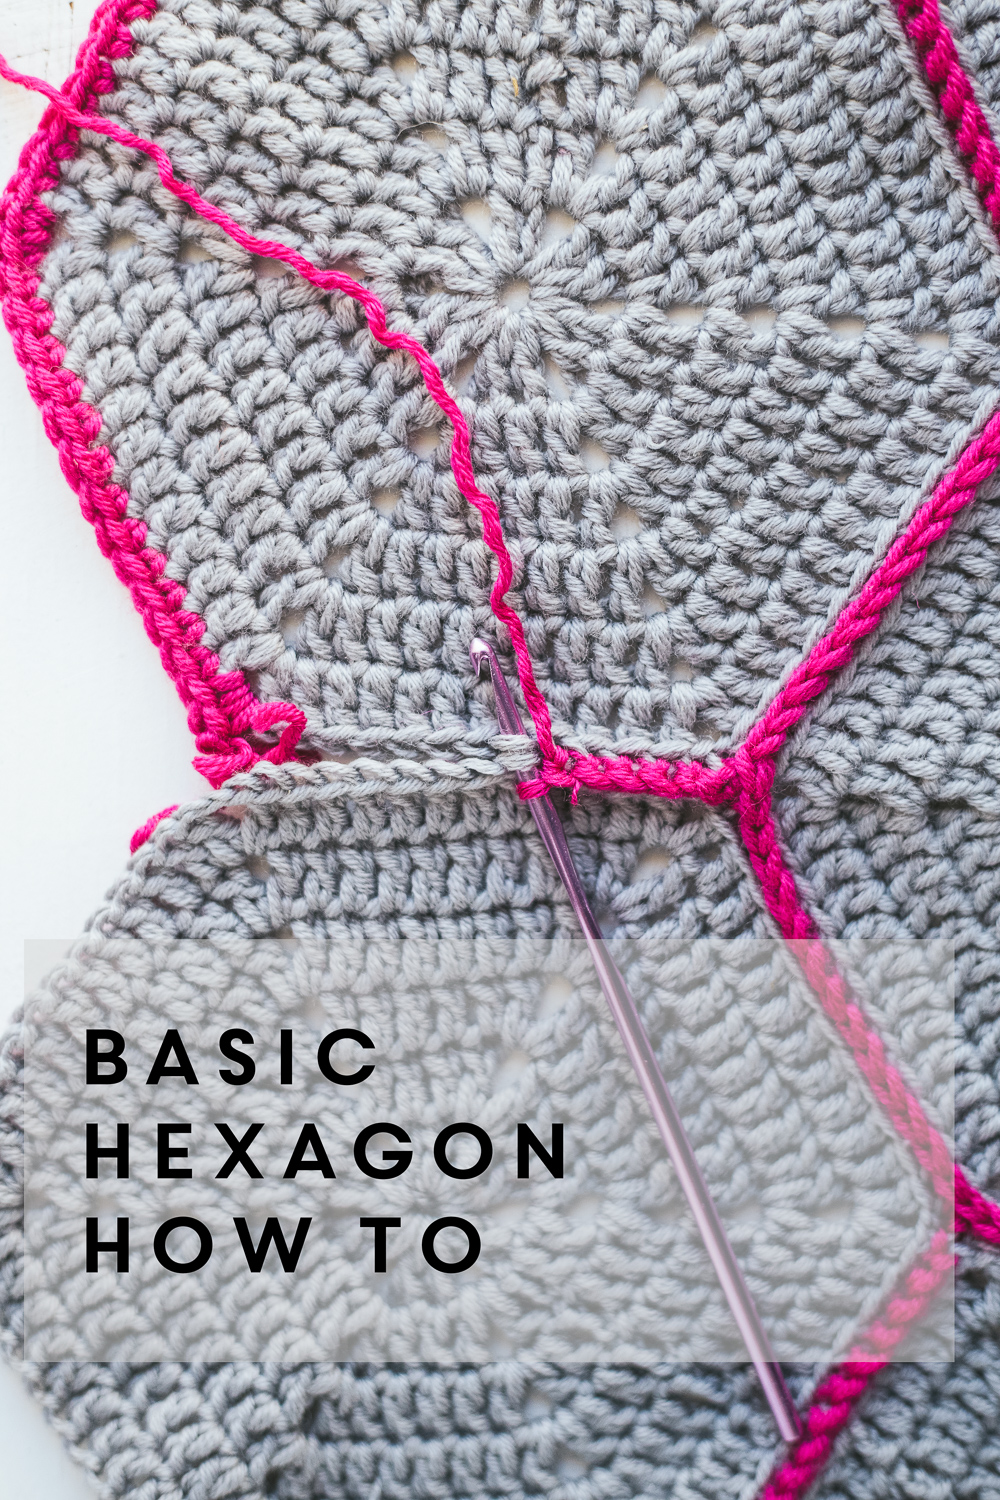 How To Basic Hexagon Slugs On The Refrigerator Uk